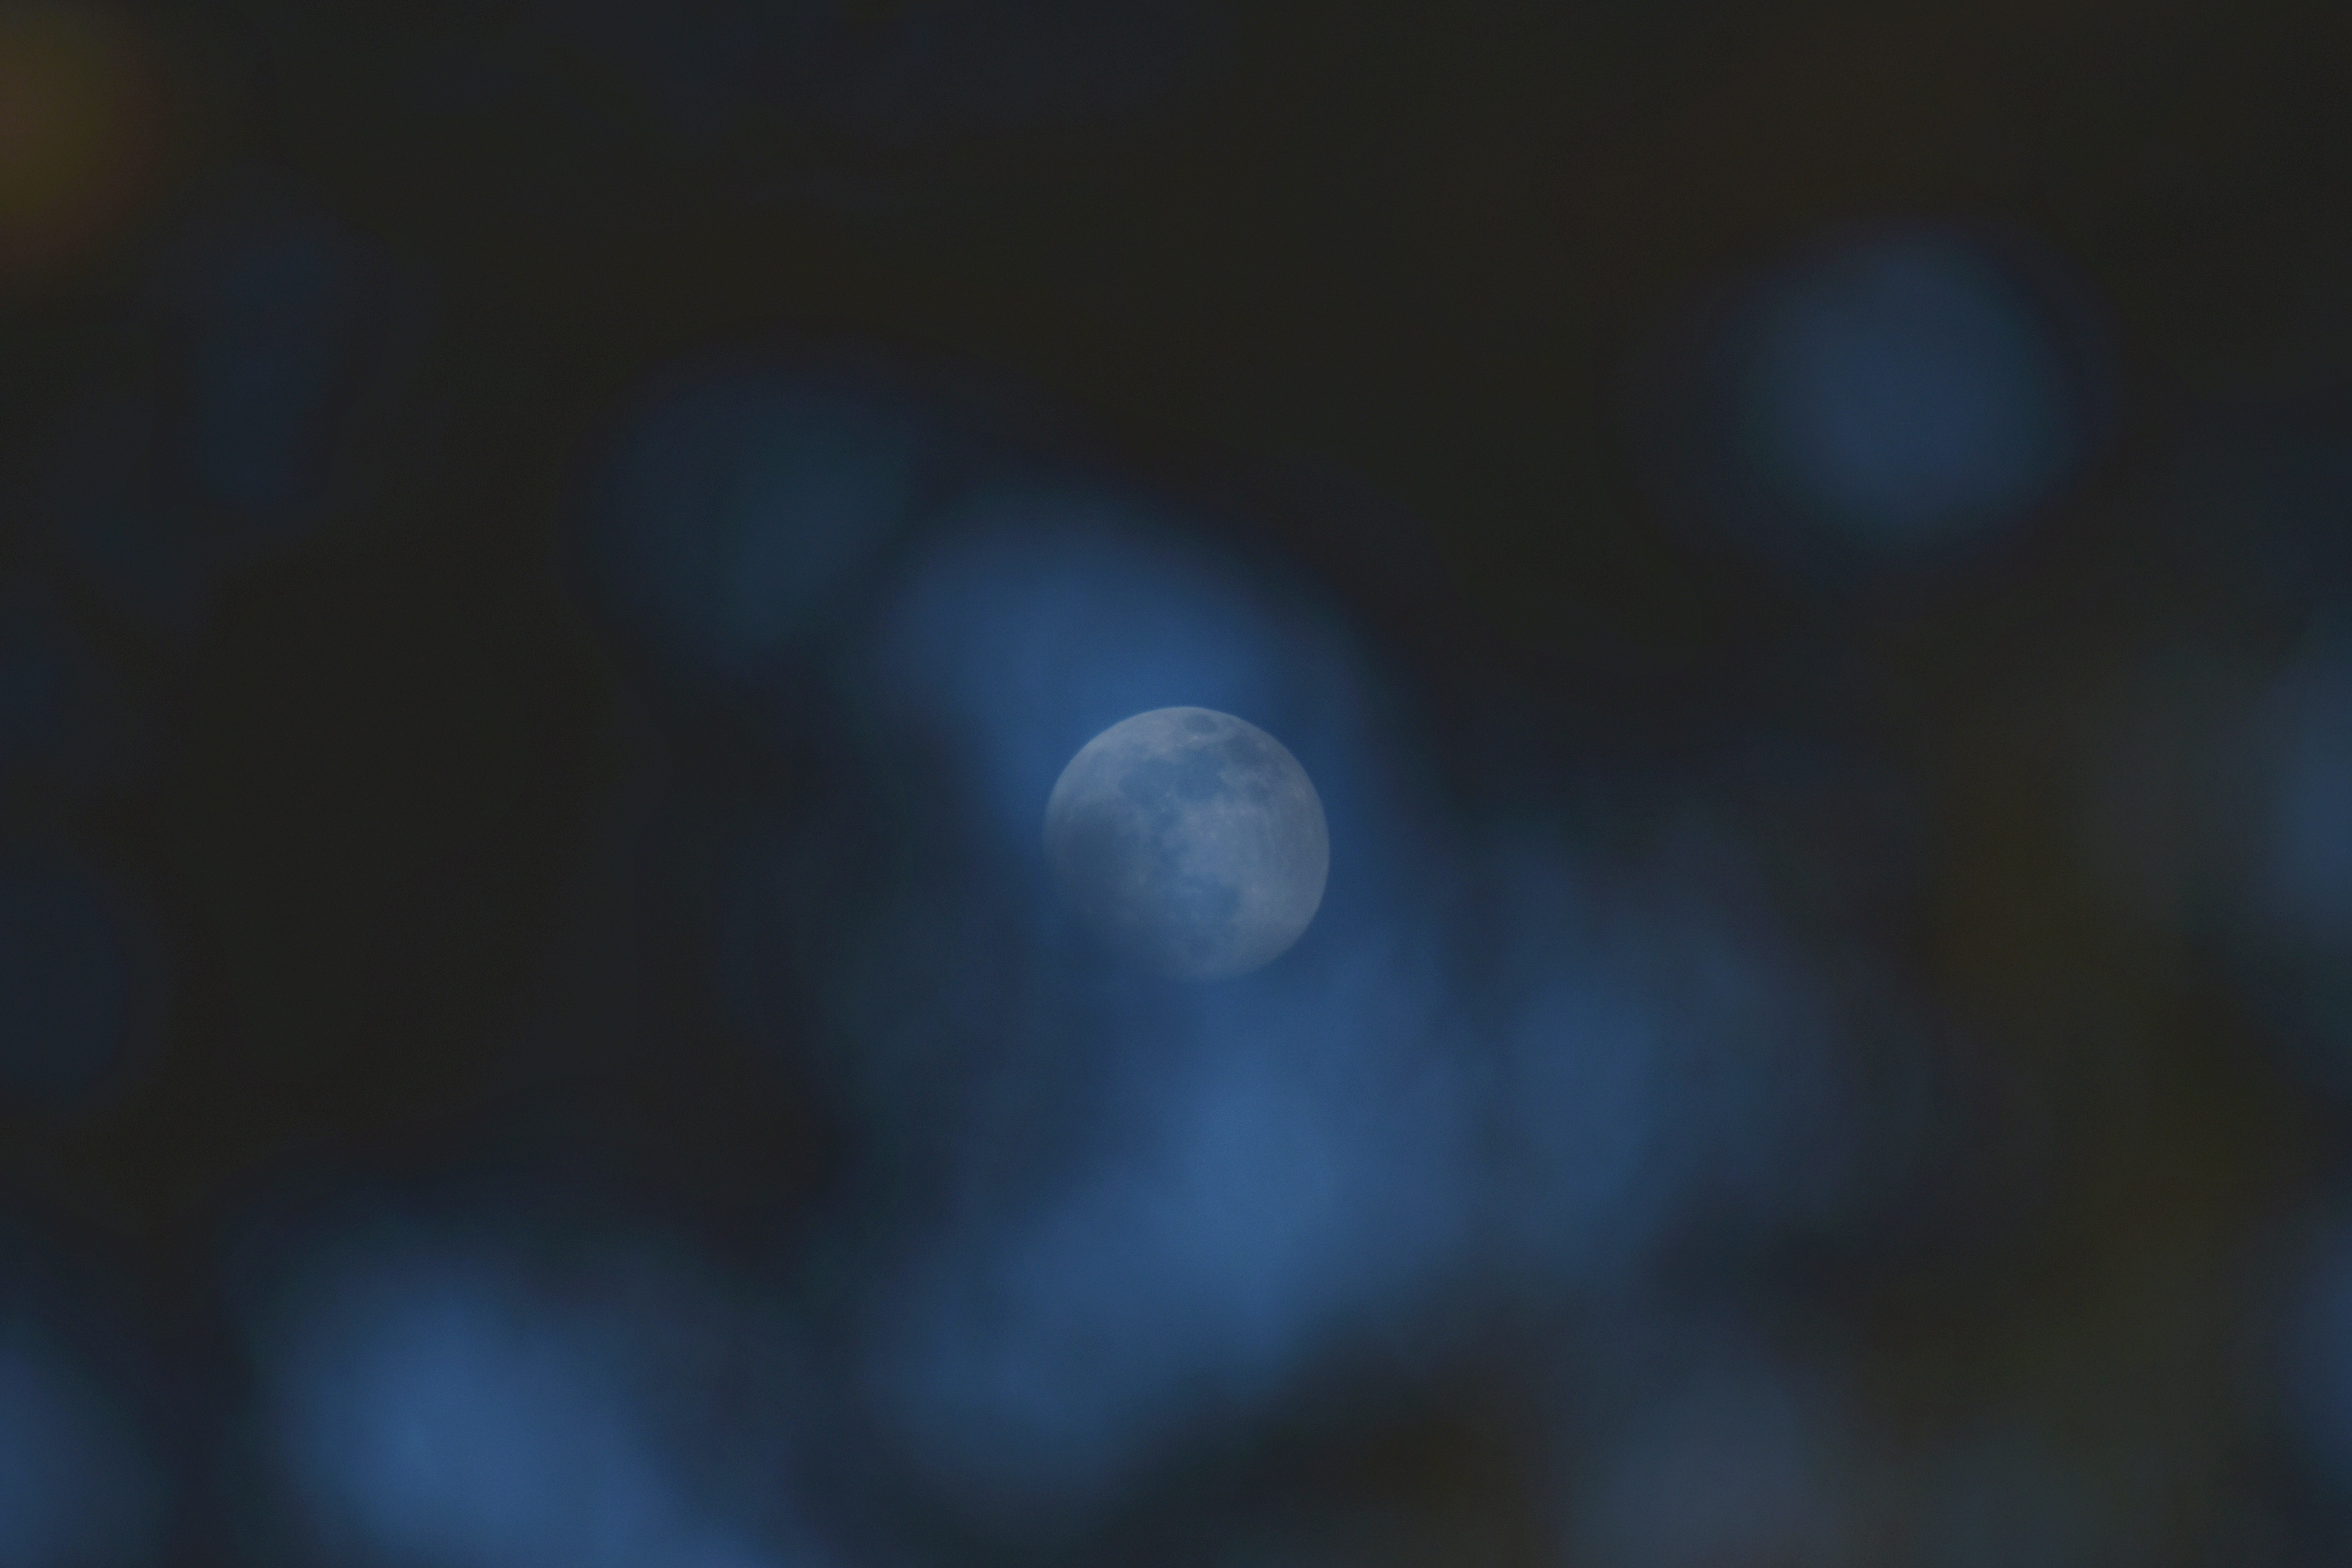 photo of full moon during night time